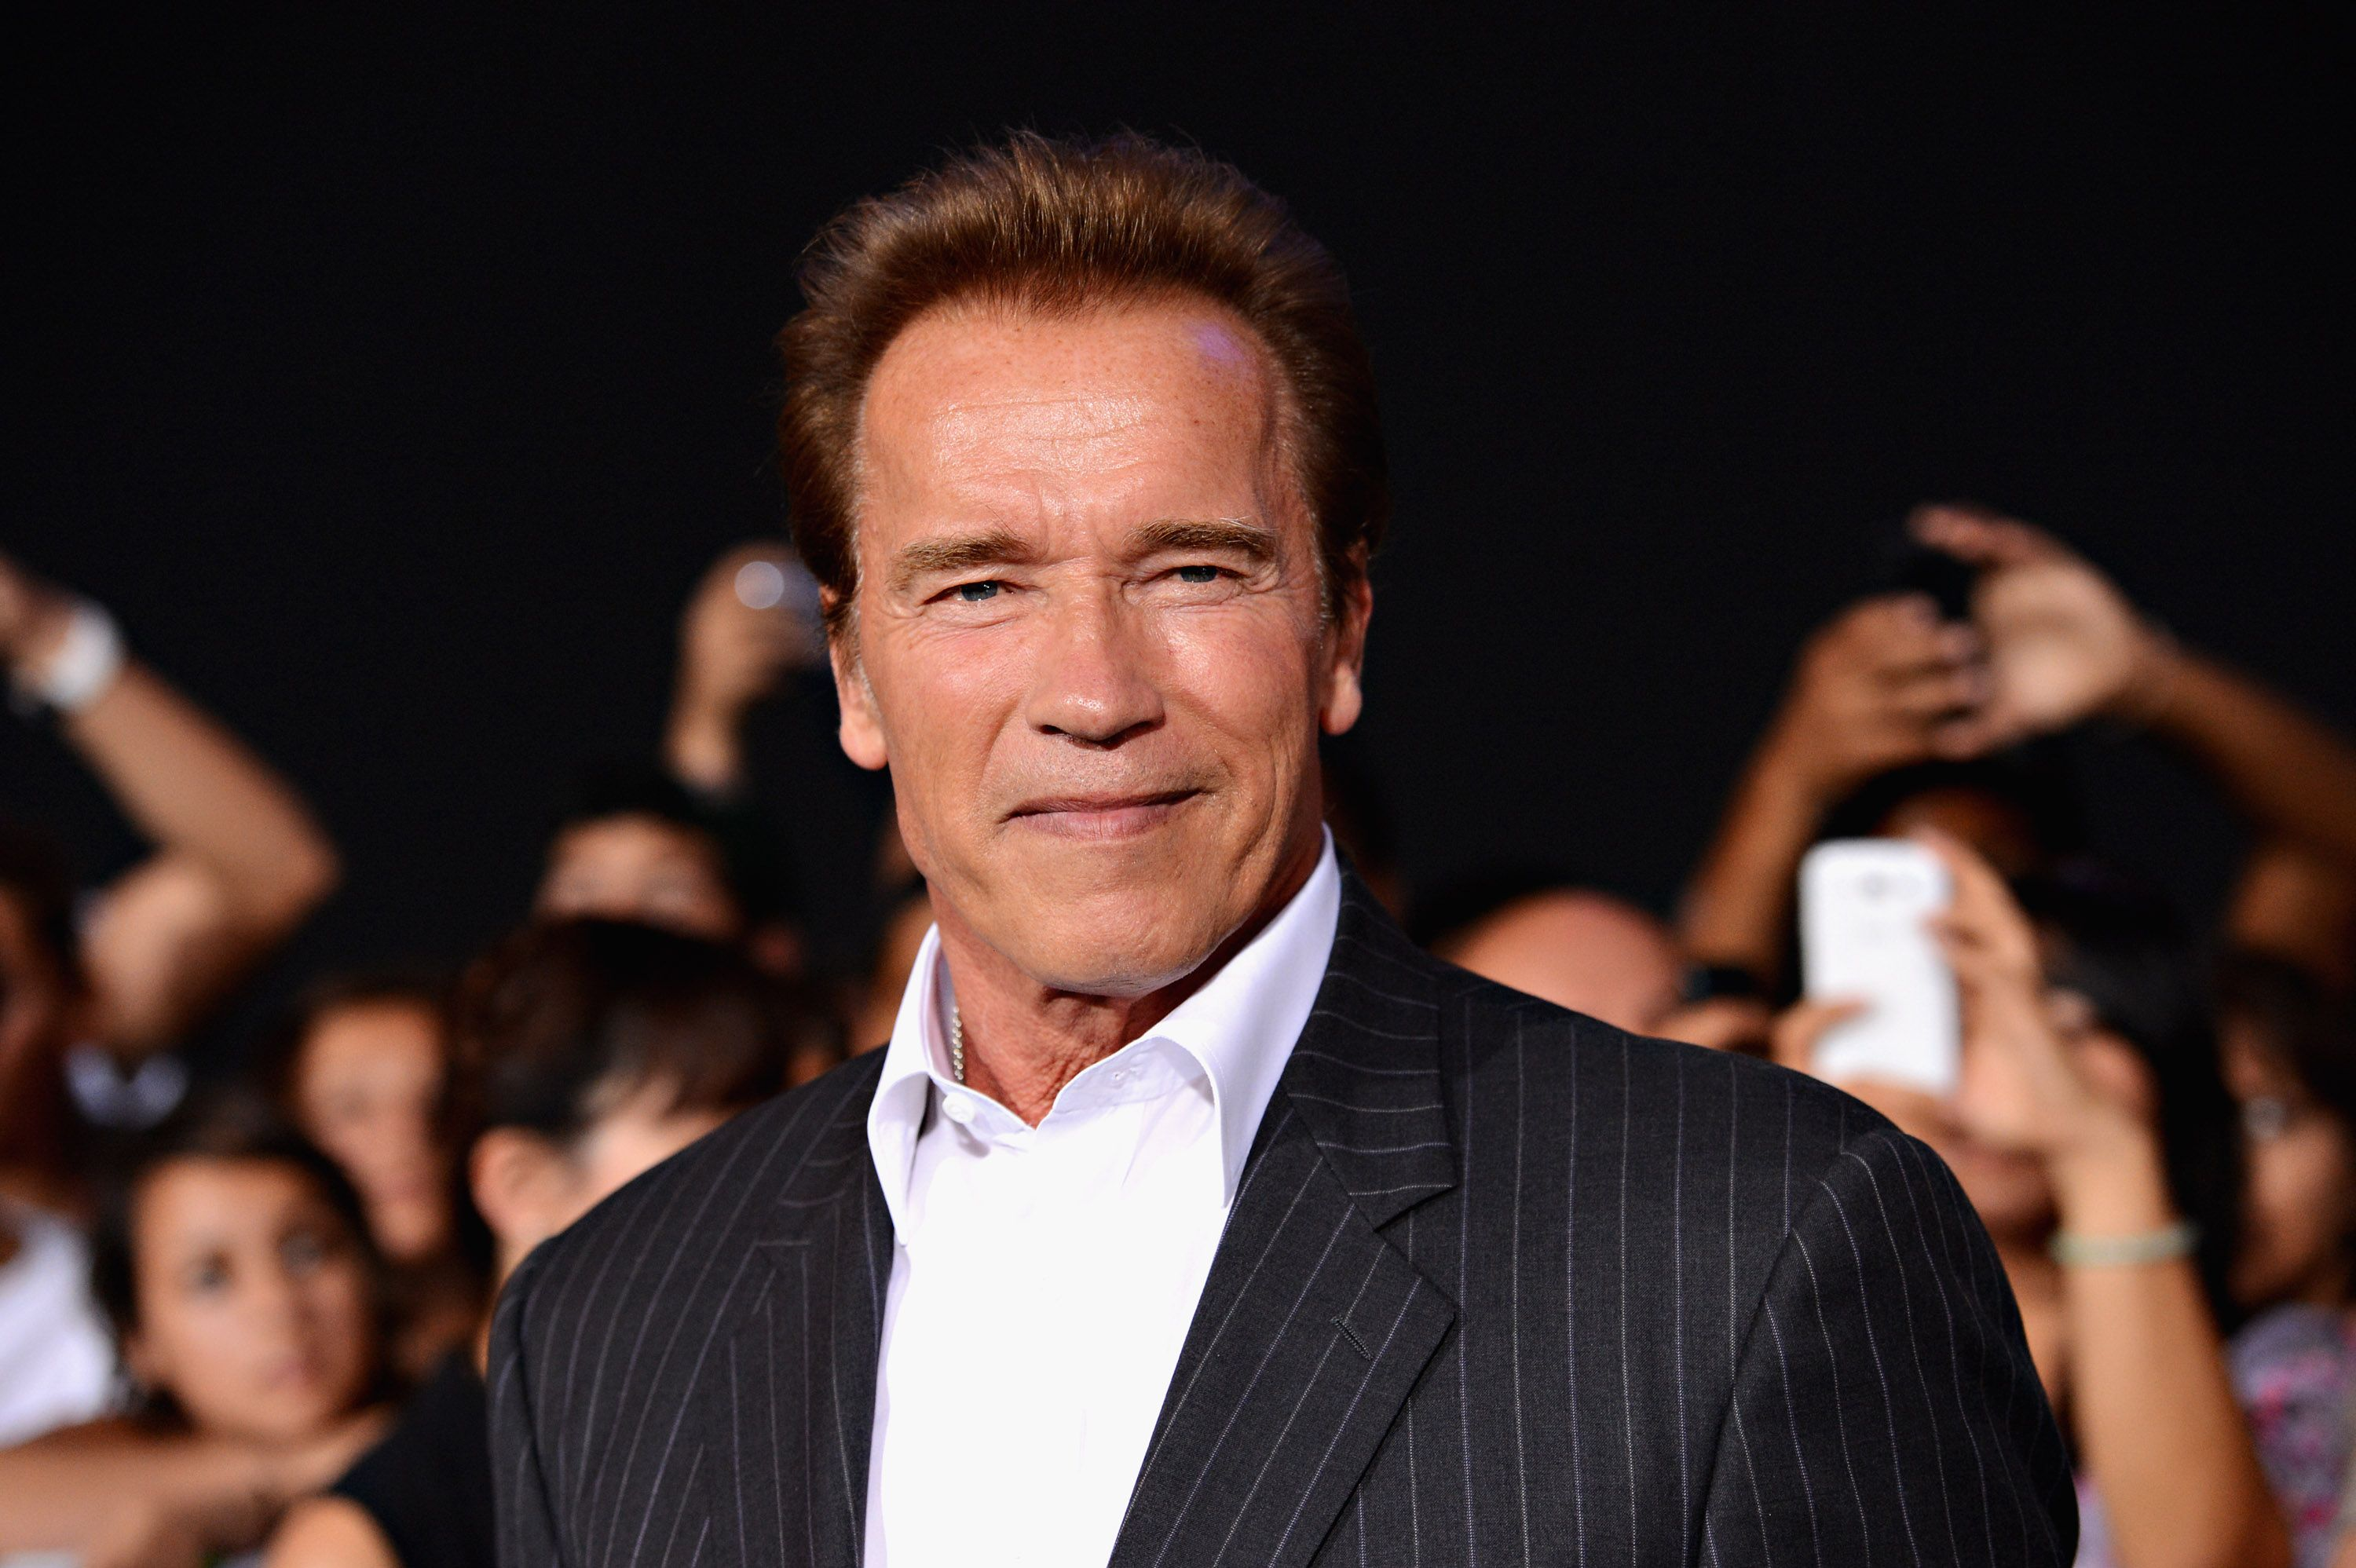 """Arnold Schwarzeneggerat Lionsgate Films' """"The Expendables 2"""" premiere on August 15, 2012, in Hollywood, California   Photo:Jason Merritt/Getty Images"""